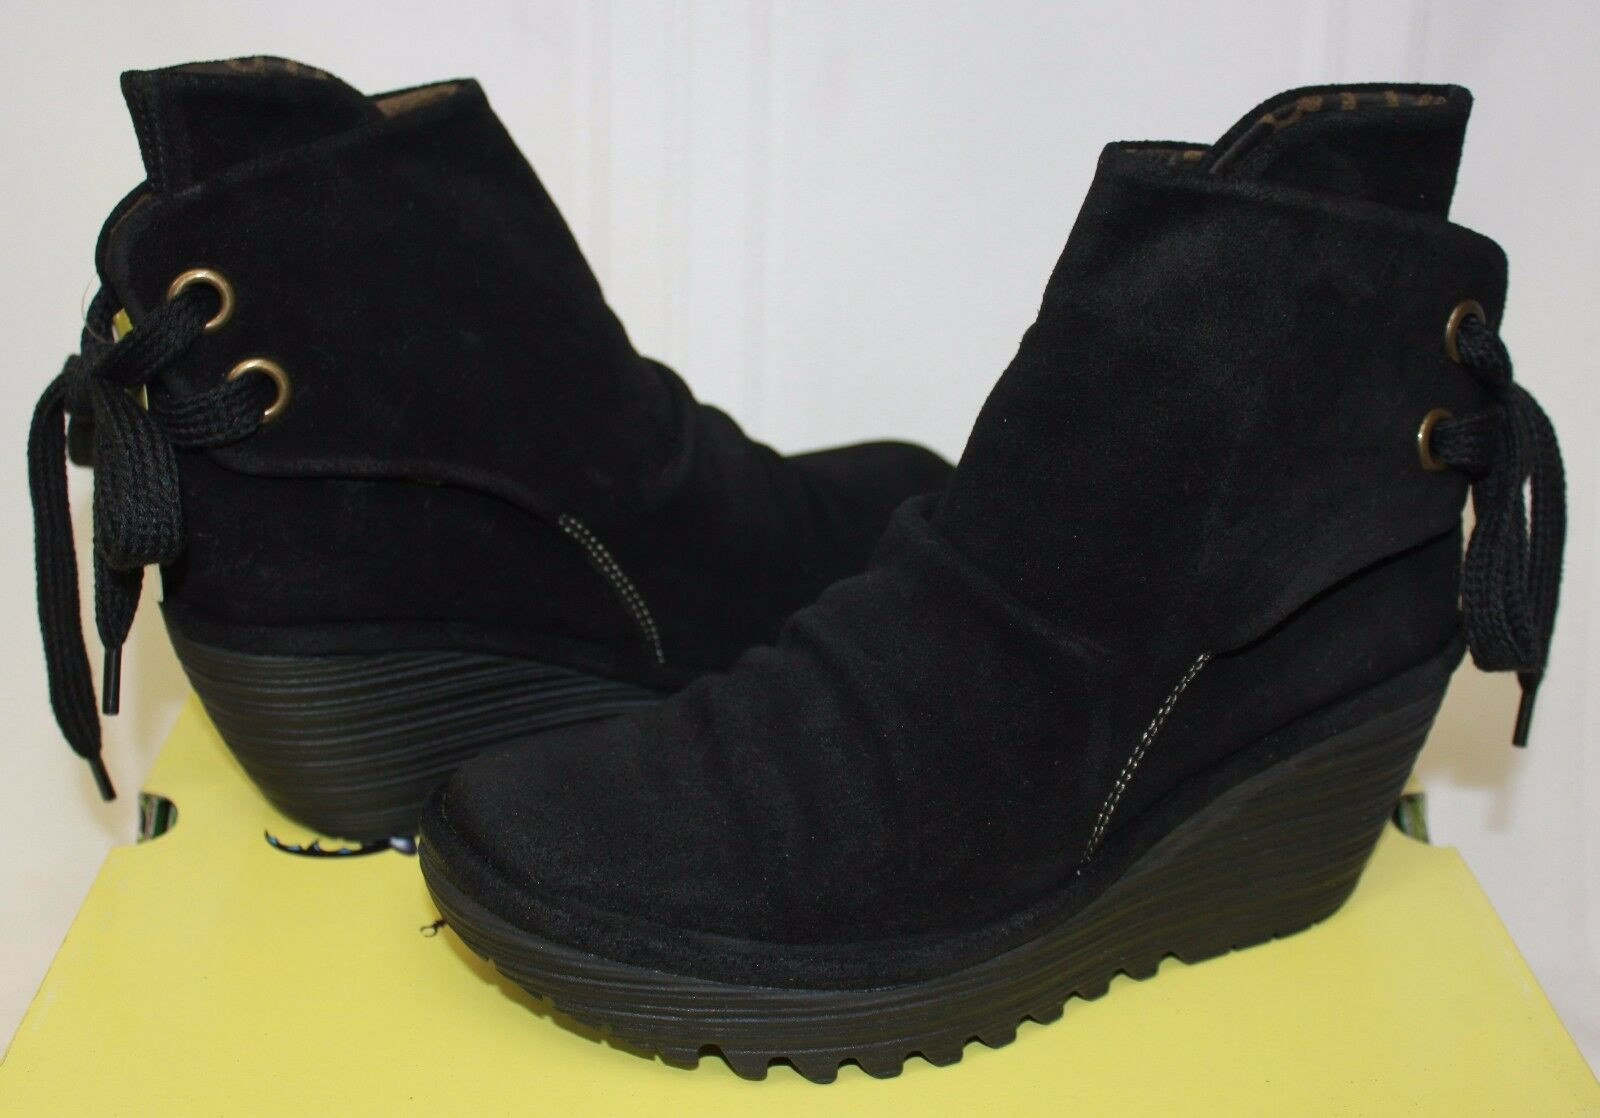 FLY LONDON Yama tie back booties Black Oil suede Boots New With Box!